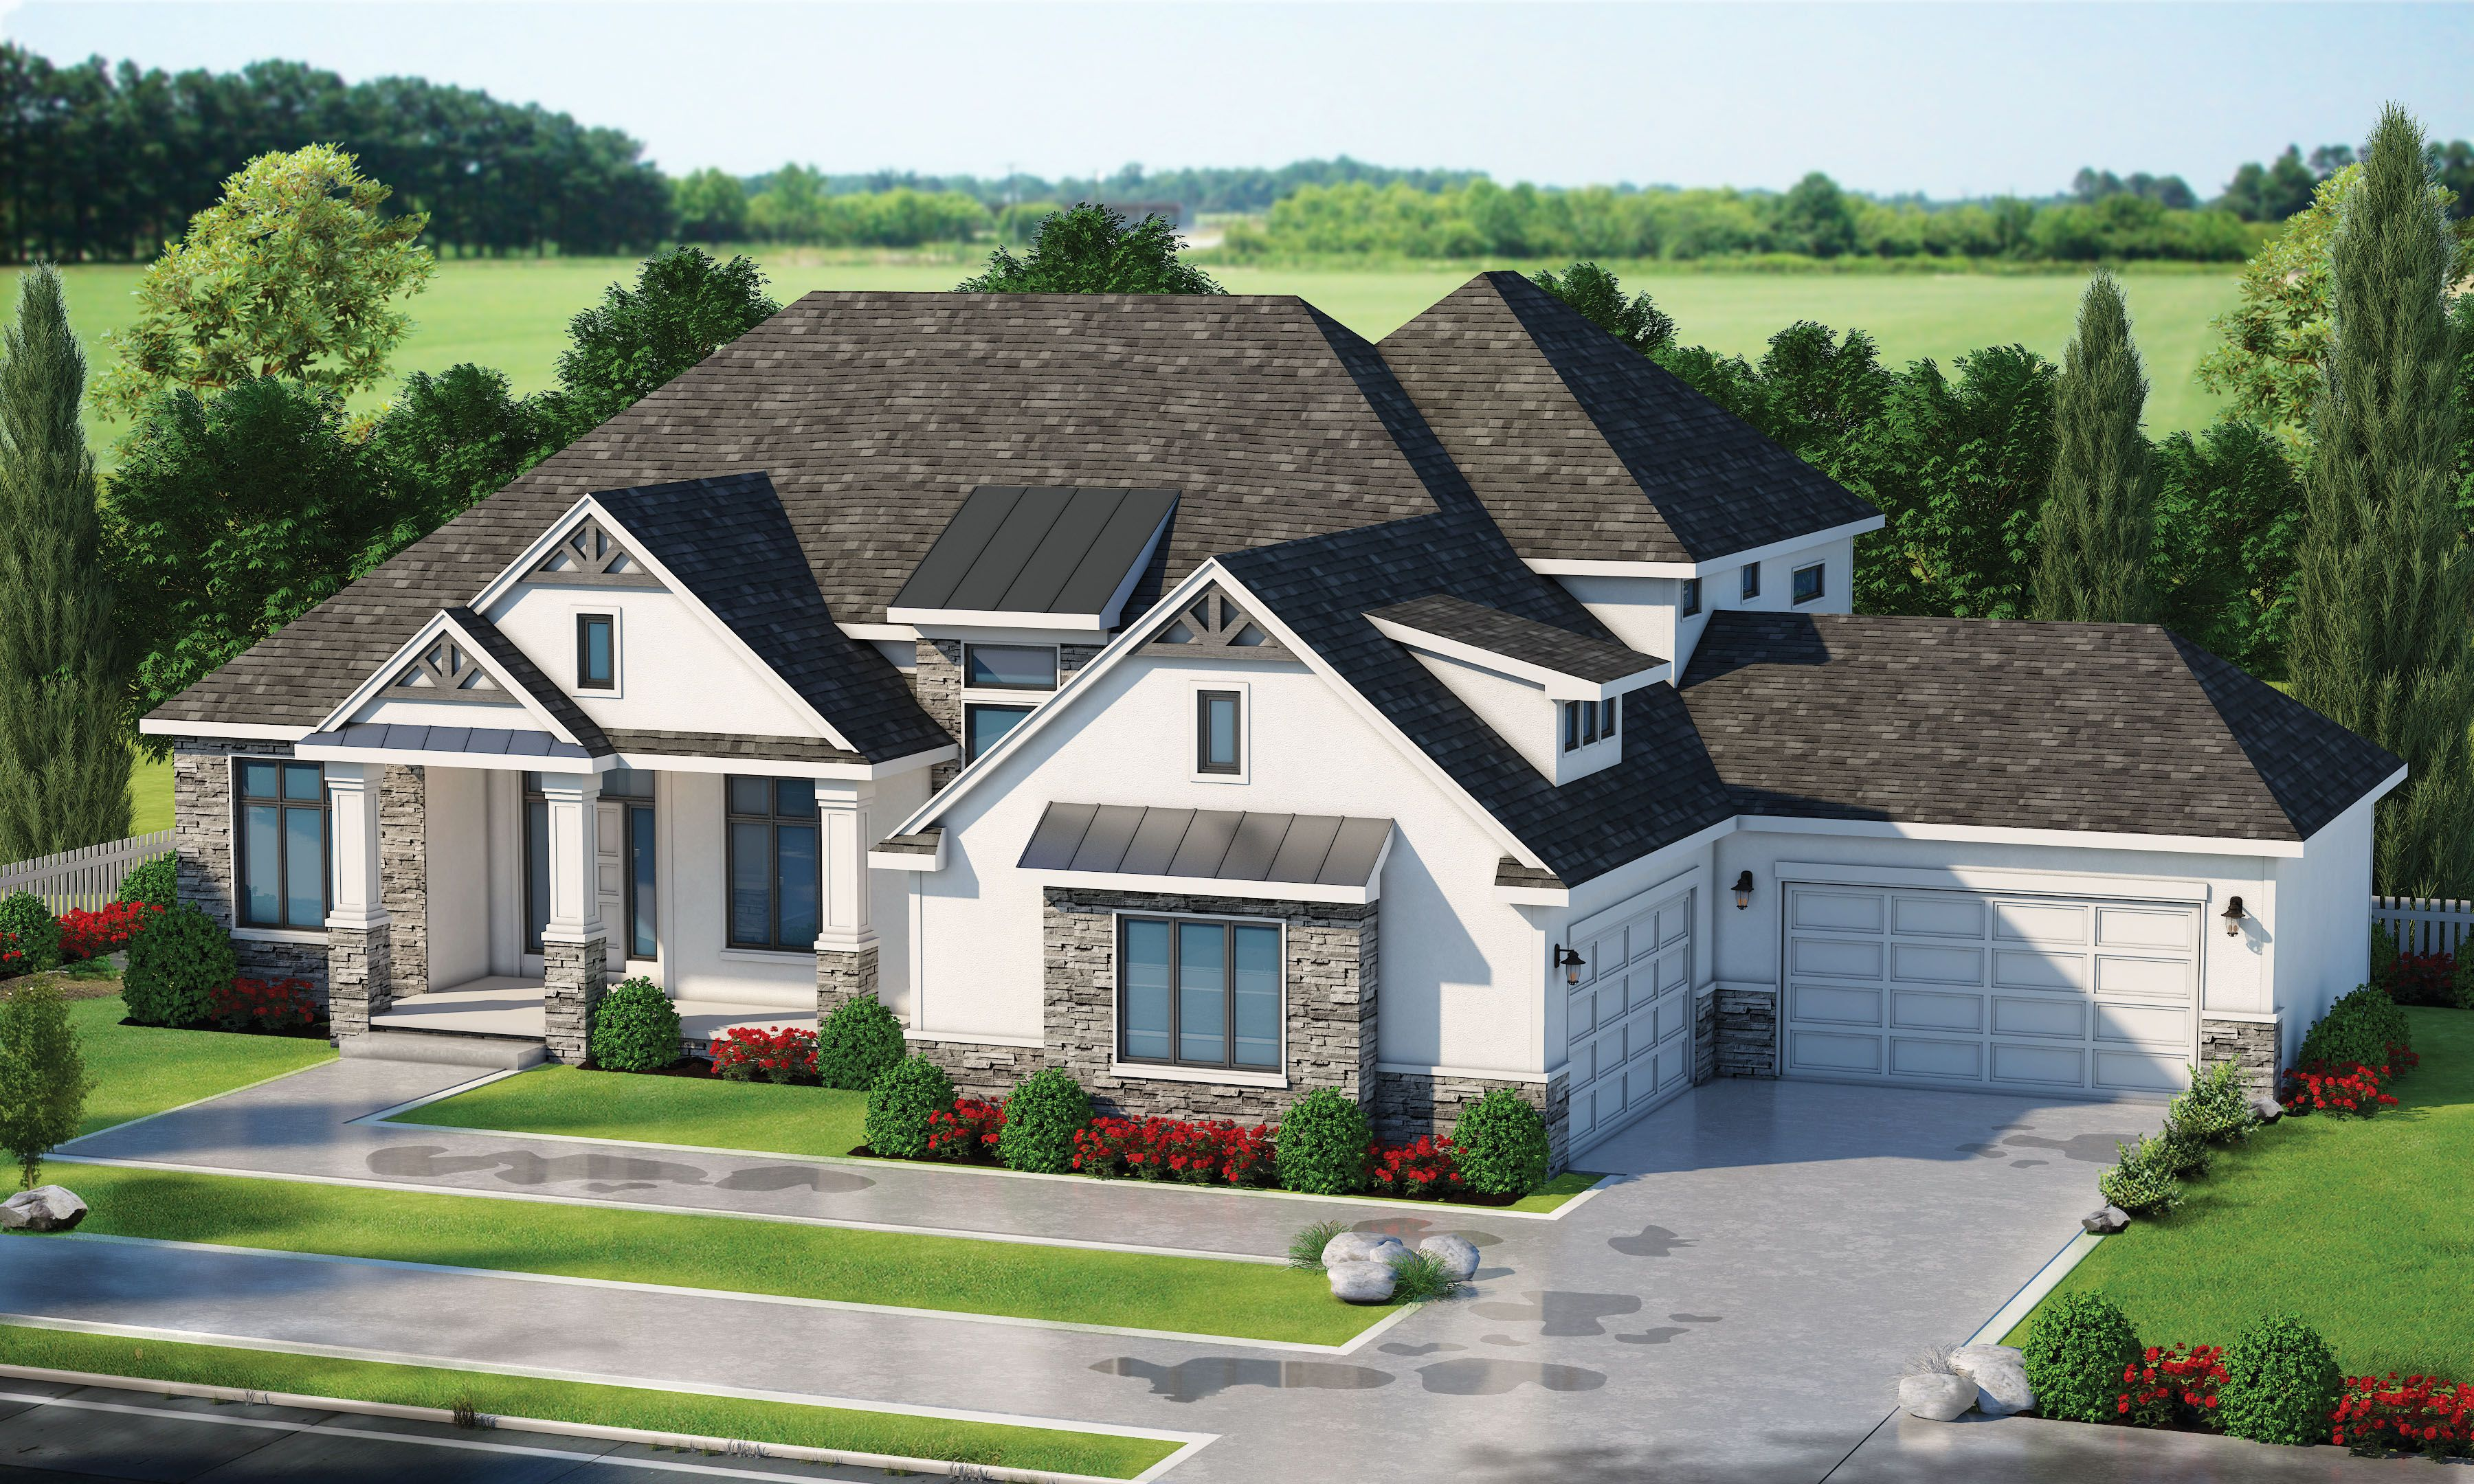 Plan View Design Basics In 2020 Craftsman Style House Plans Stucco Homes House Plans Farmhouse